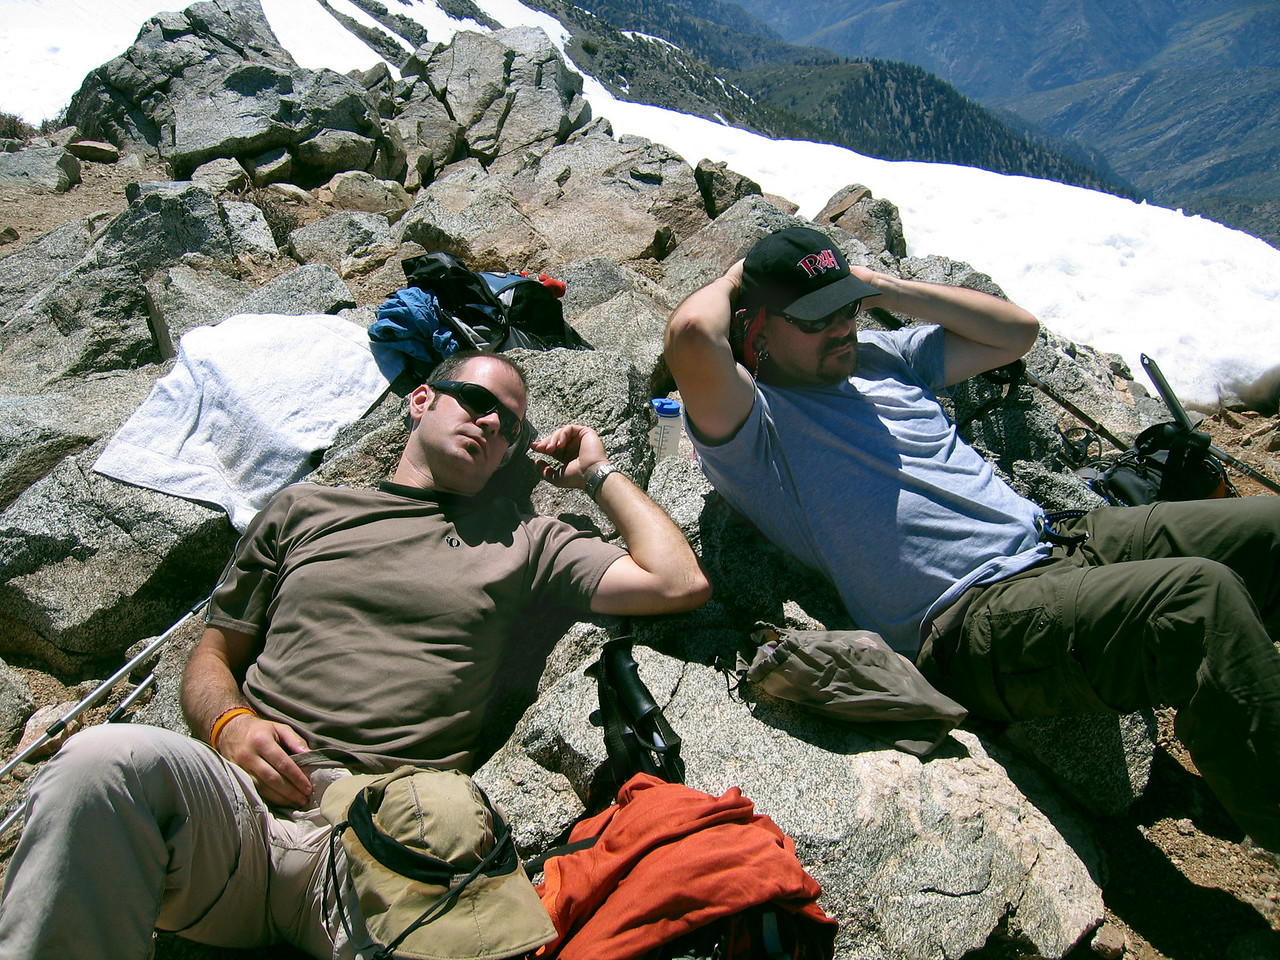 Gina snapped this pic of Greg and Paul chillin' on the summit while I was walking around taking pics.